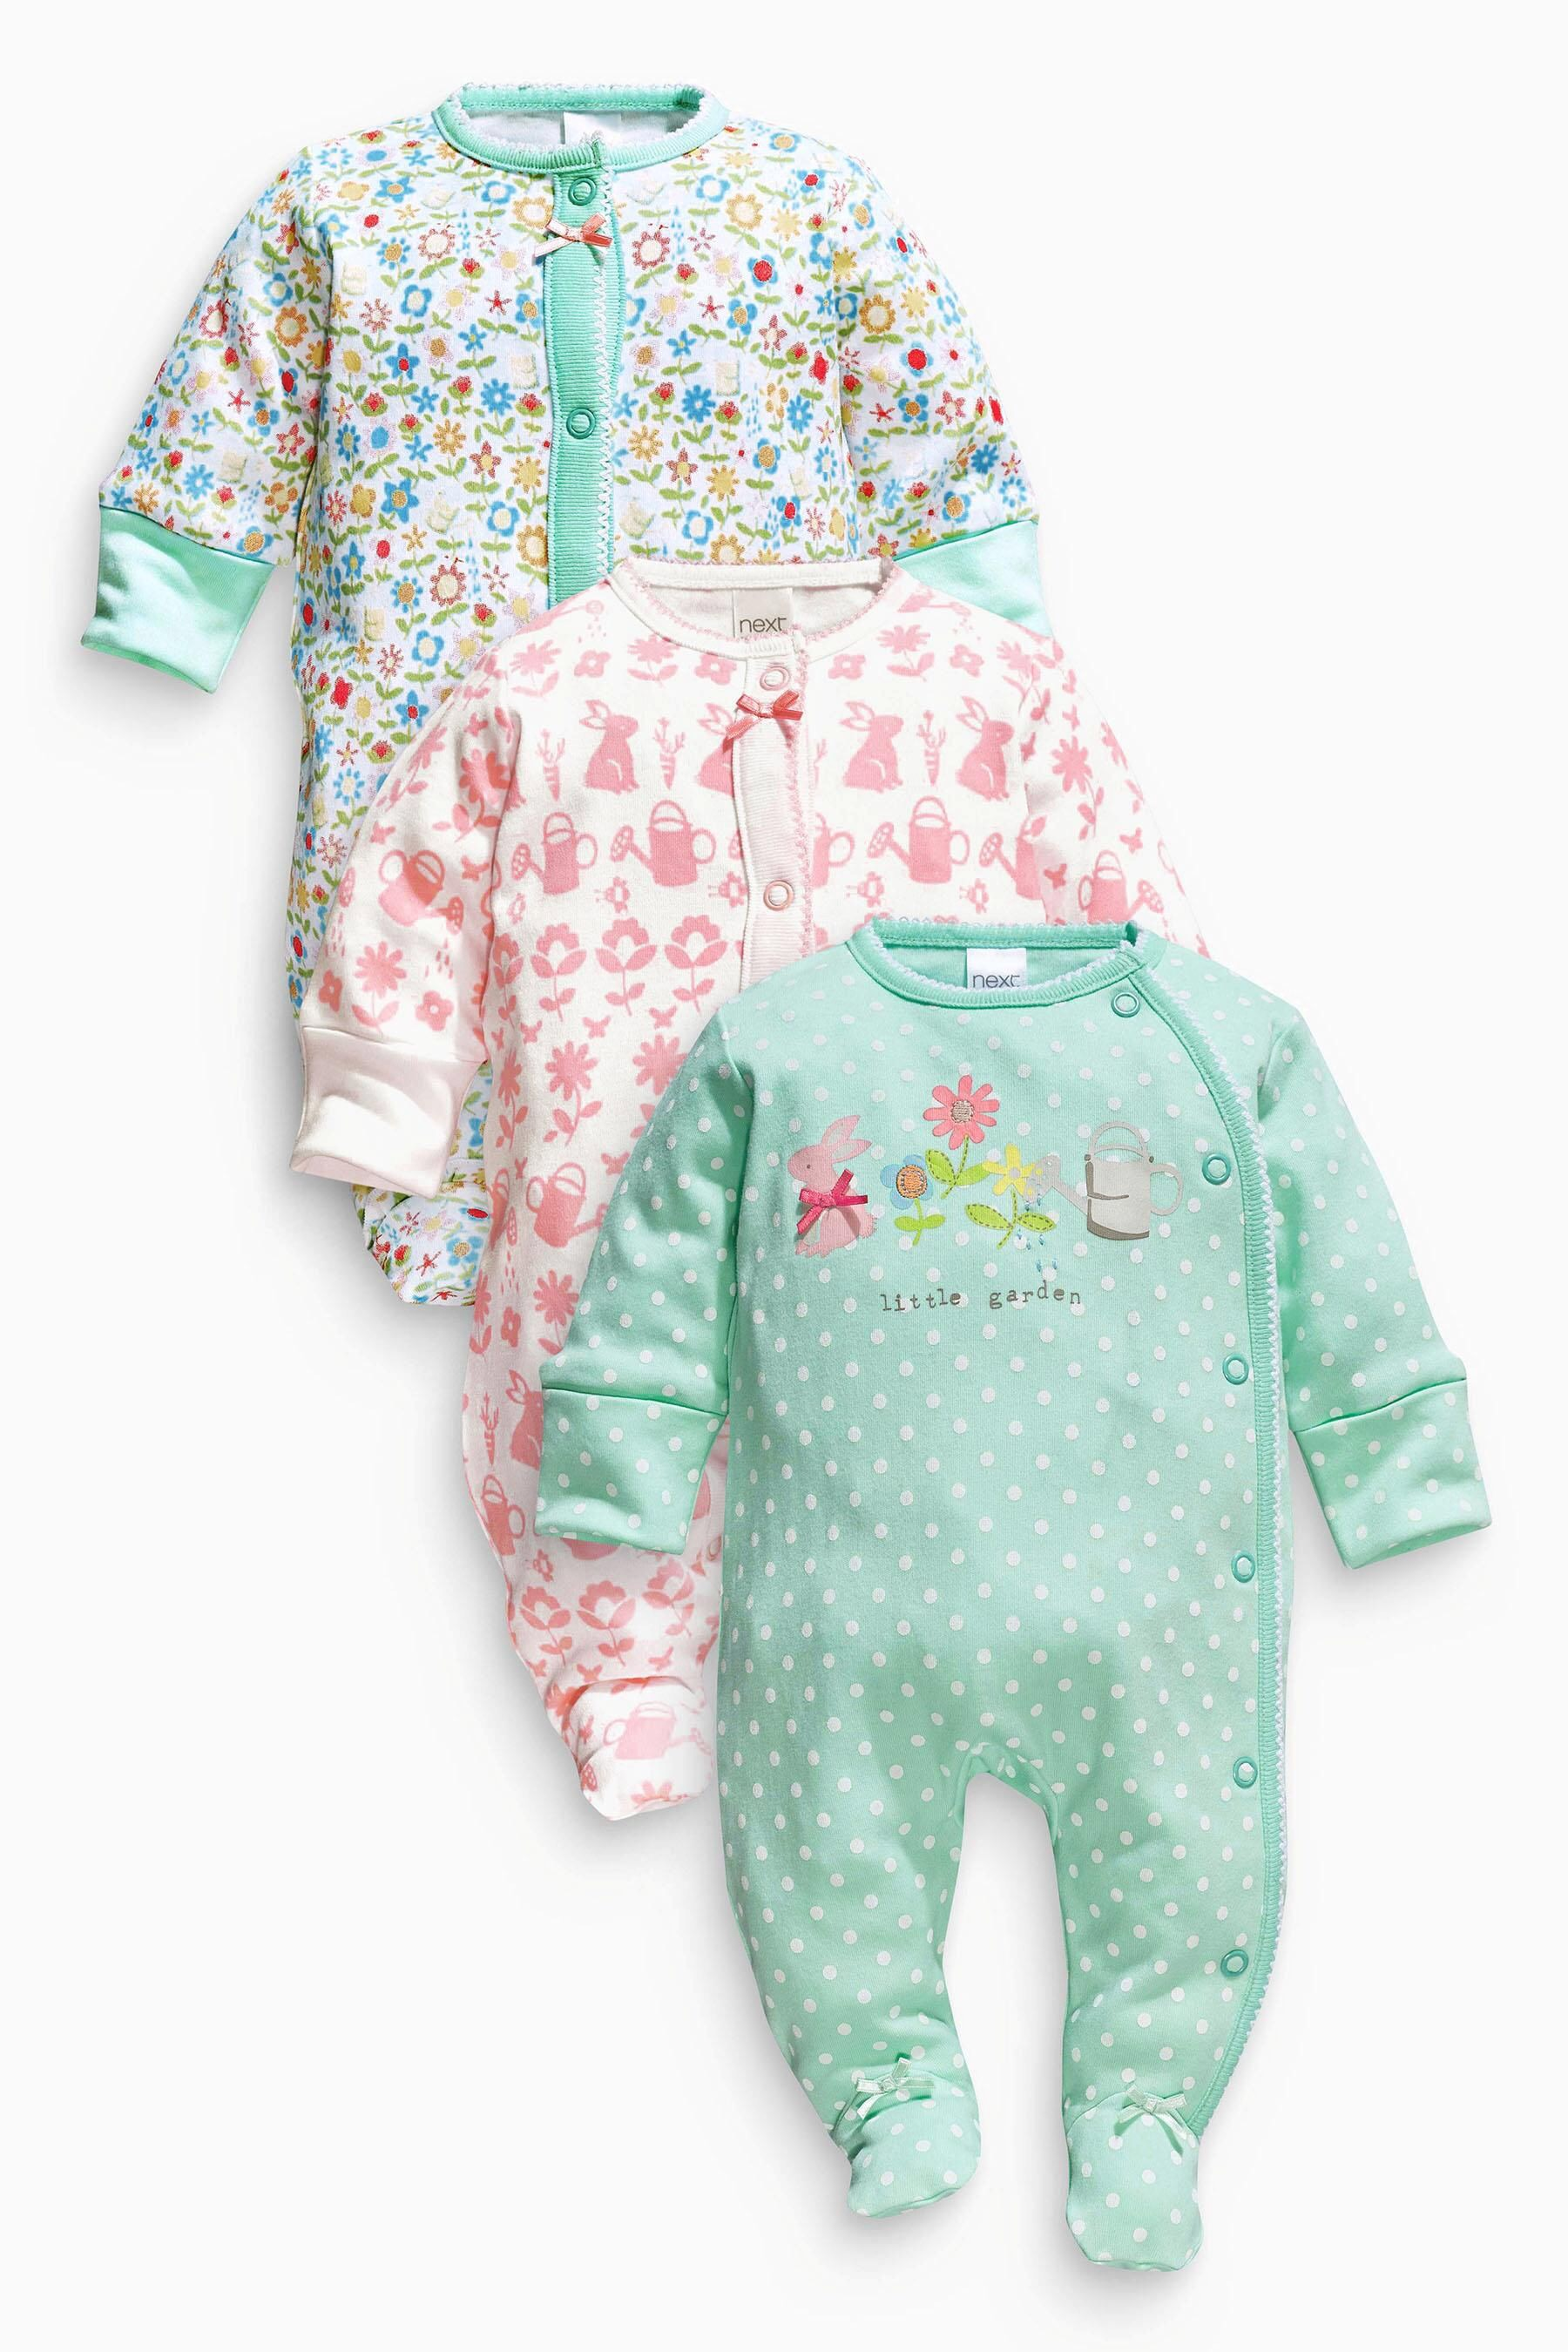 Bring adorable style to their bedtime with pretty sleepsuits for your baby girl. Prints and colourways moving along the seasonal trends, with unicorn and cute characters and florals adorning the look, bring home a delightful collection.